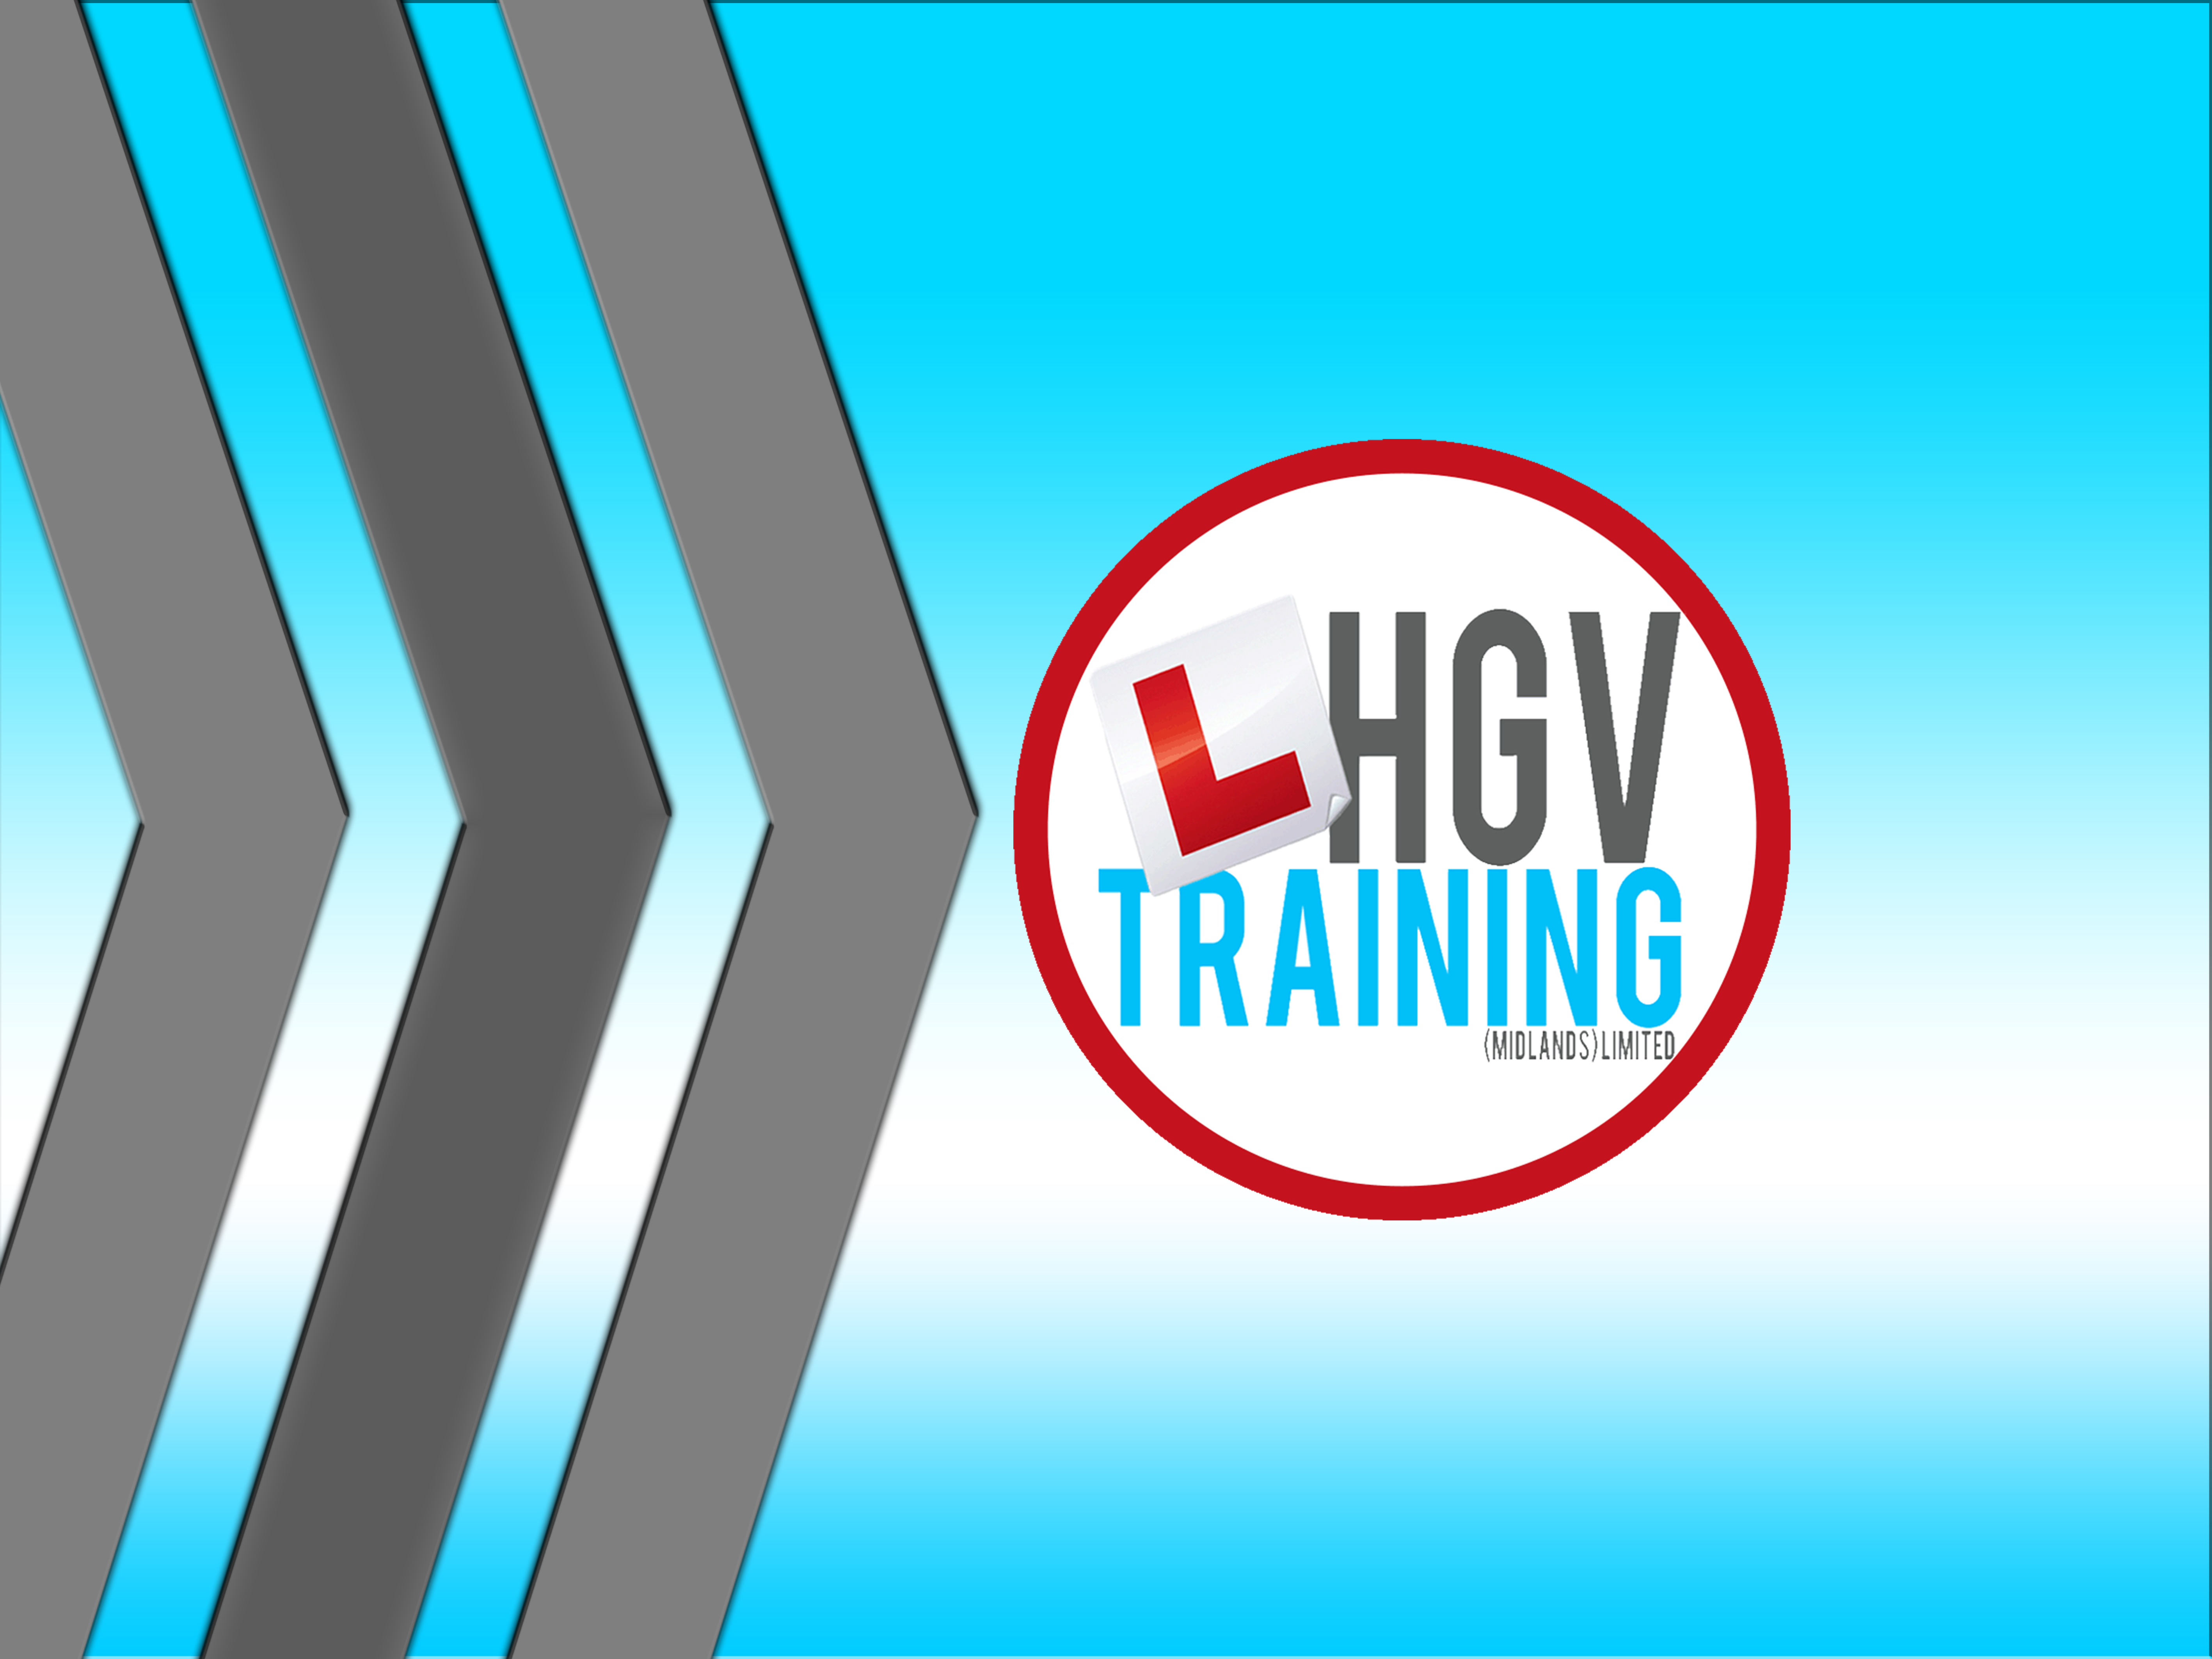 Hgv training midlands limited